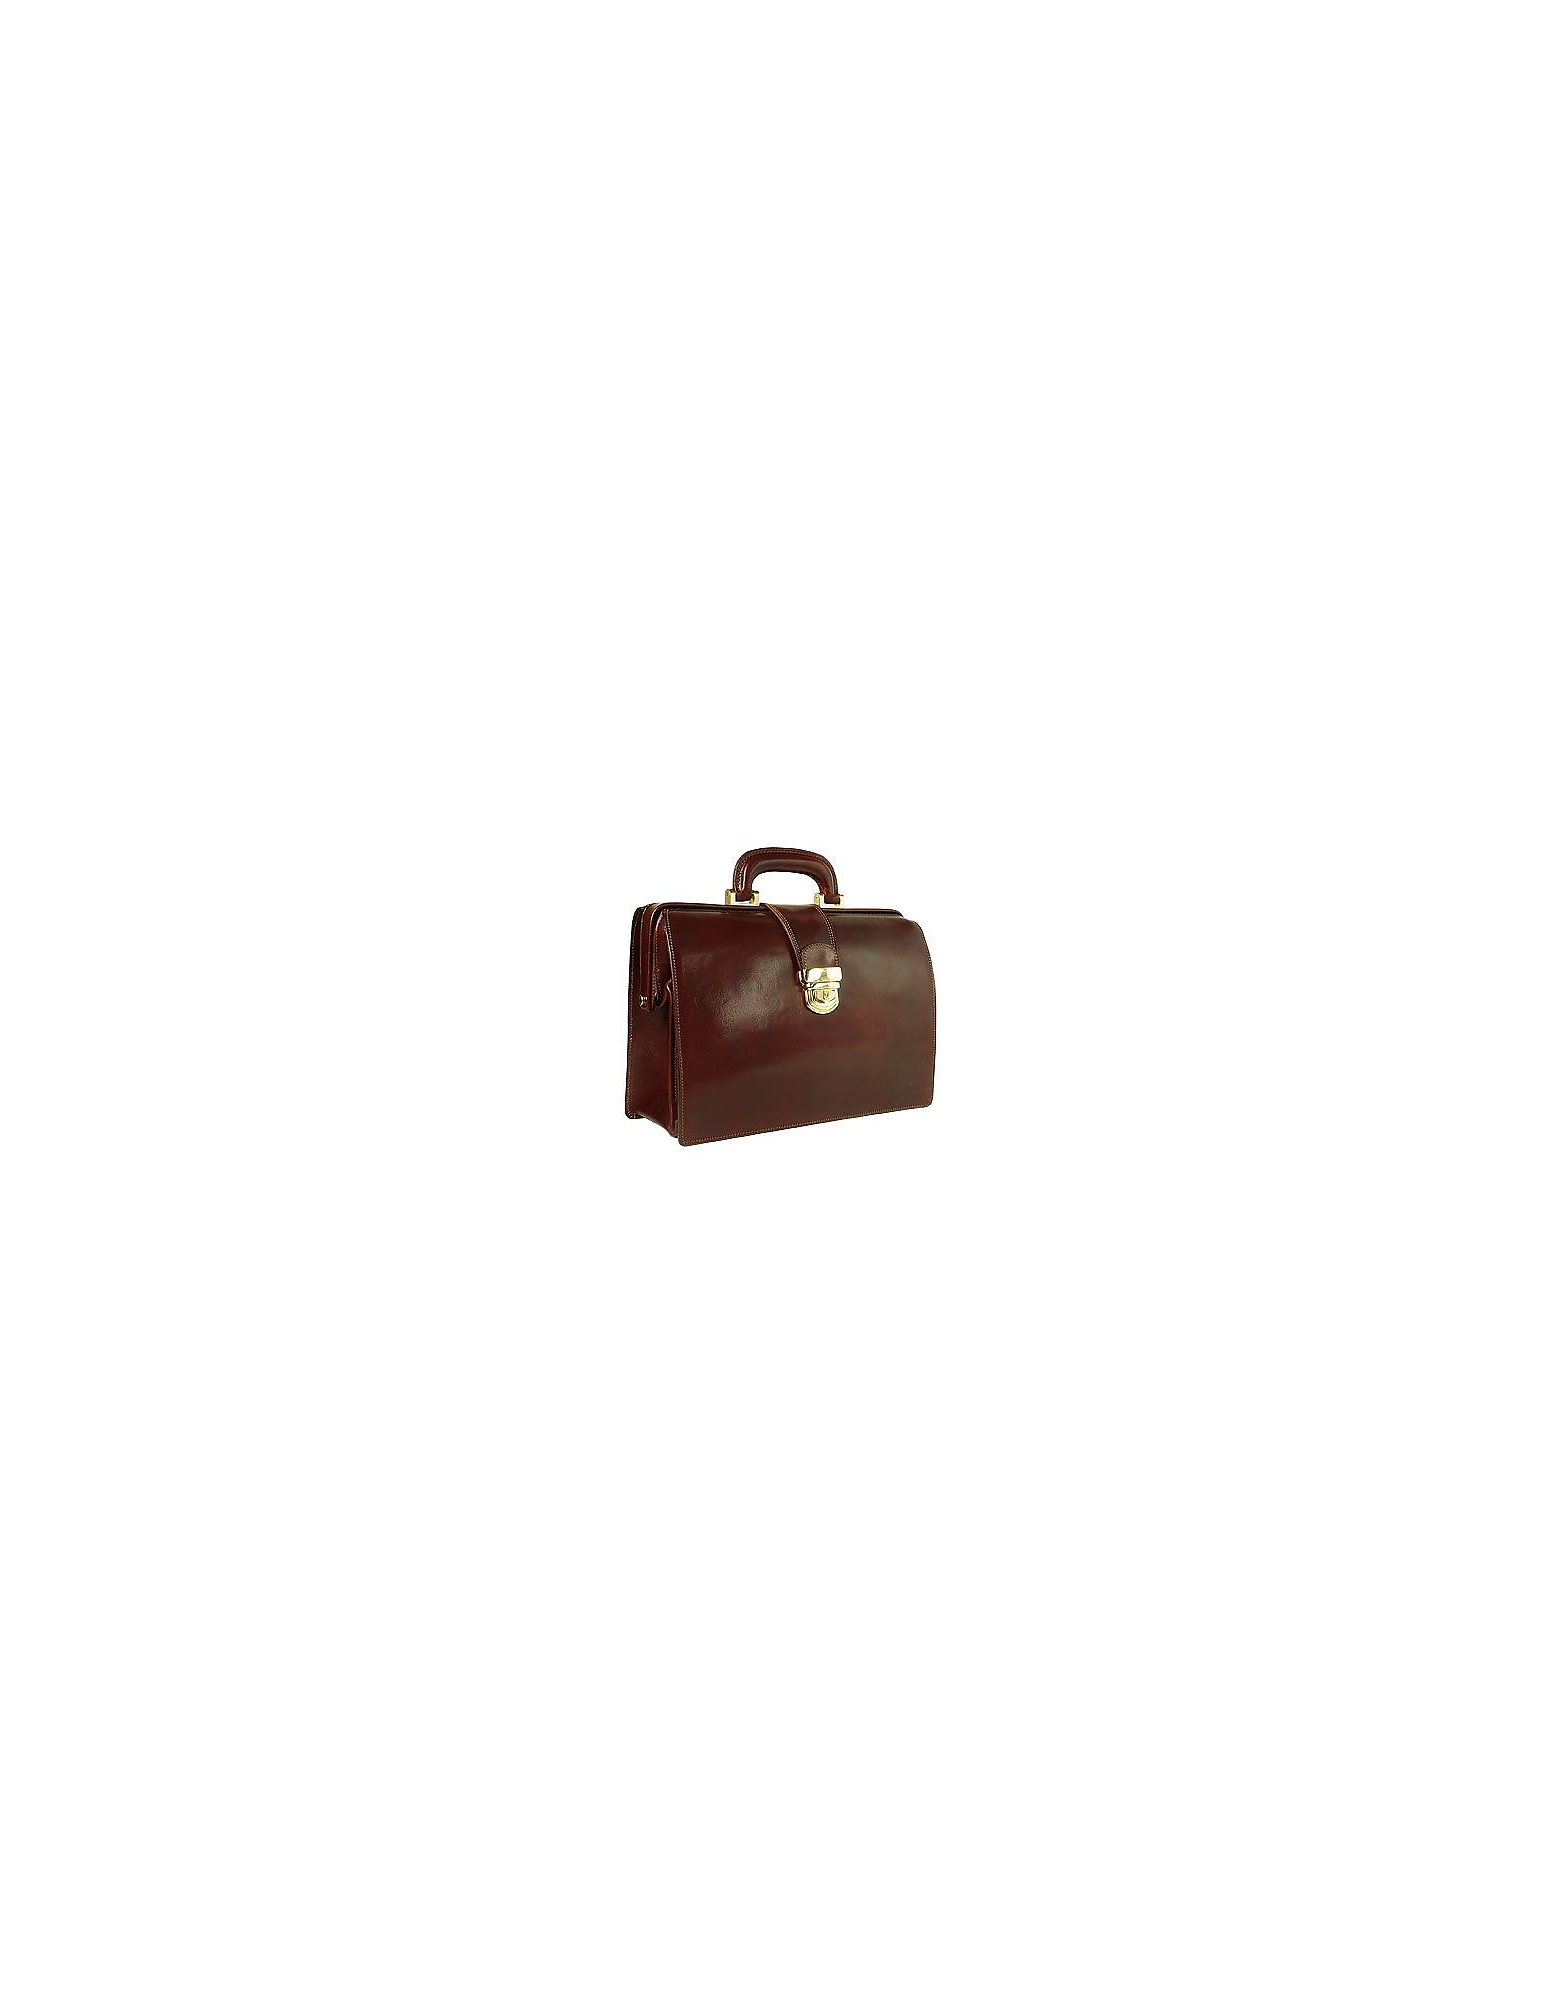 Forzieri Designer Briefcases,  Dark Brown Italian Leather Buckled Compact Doctor Bag